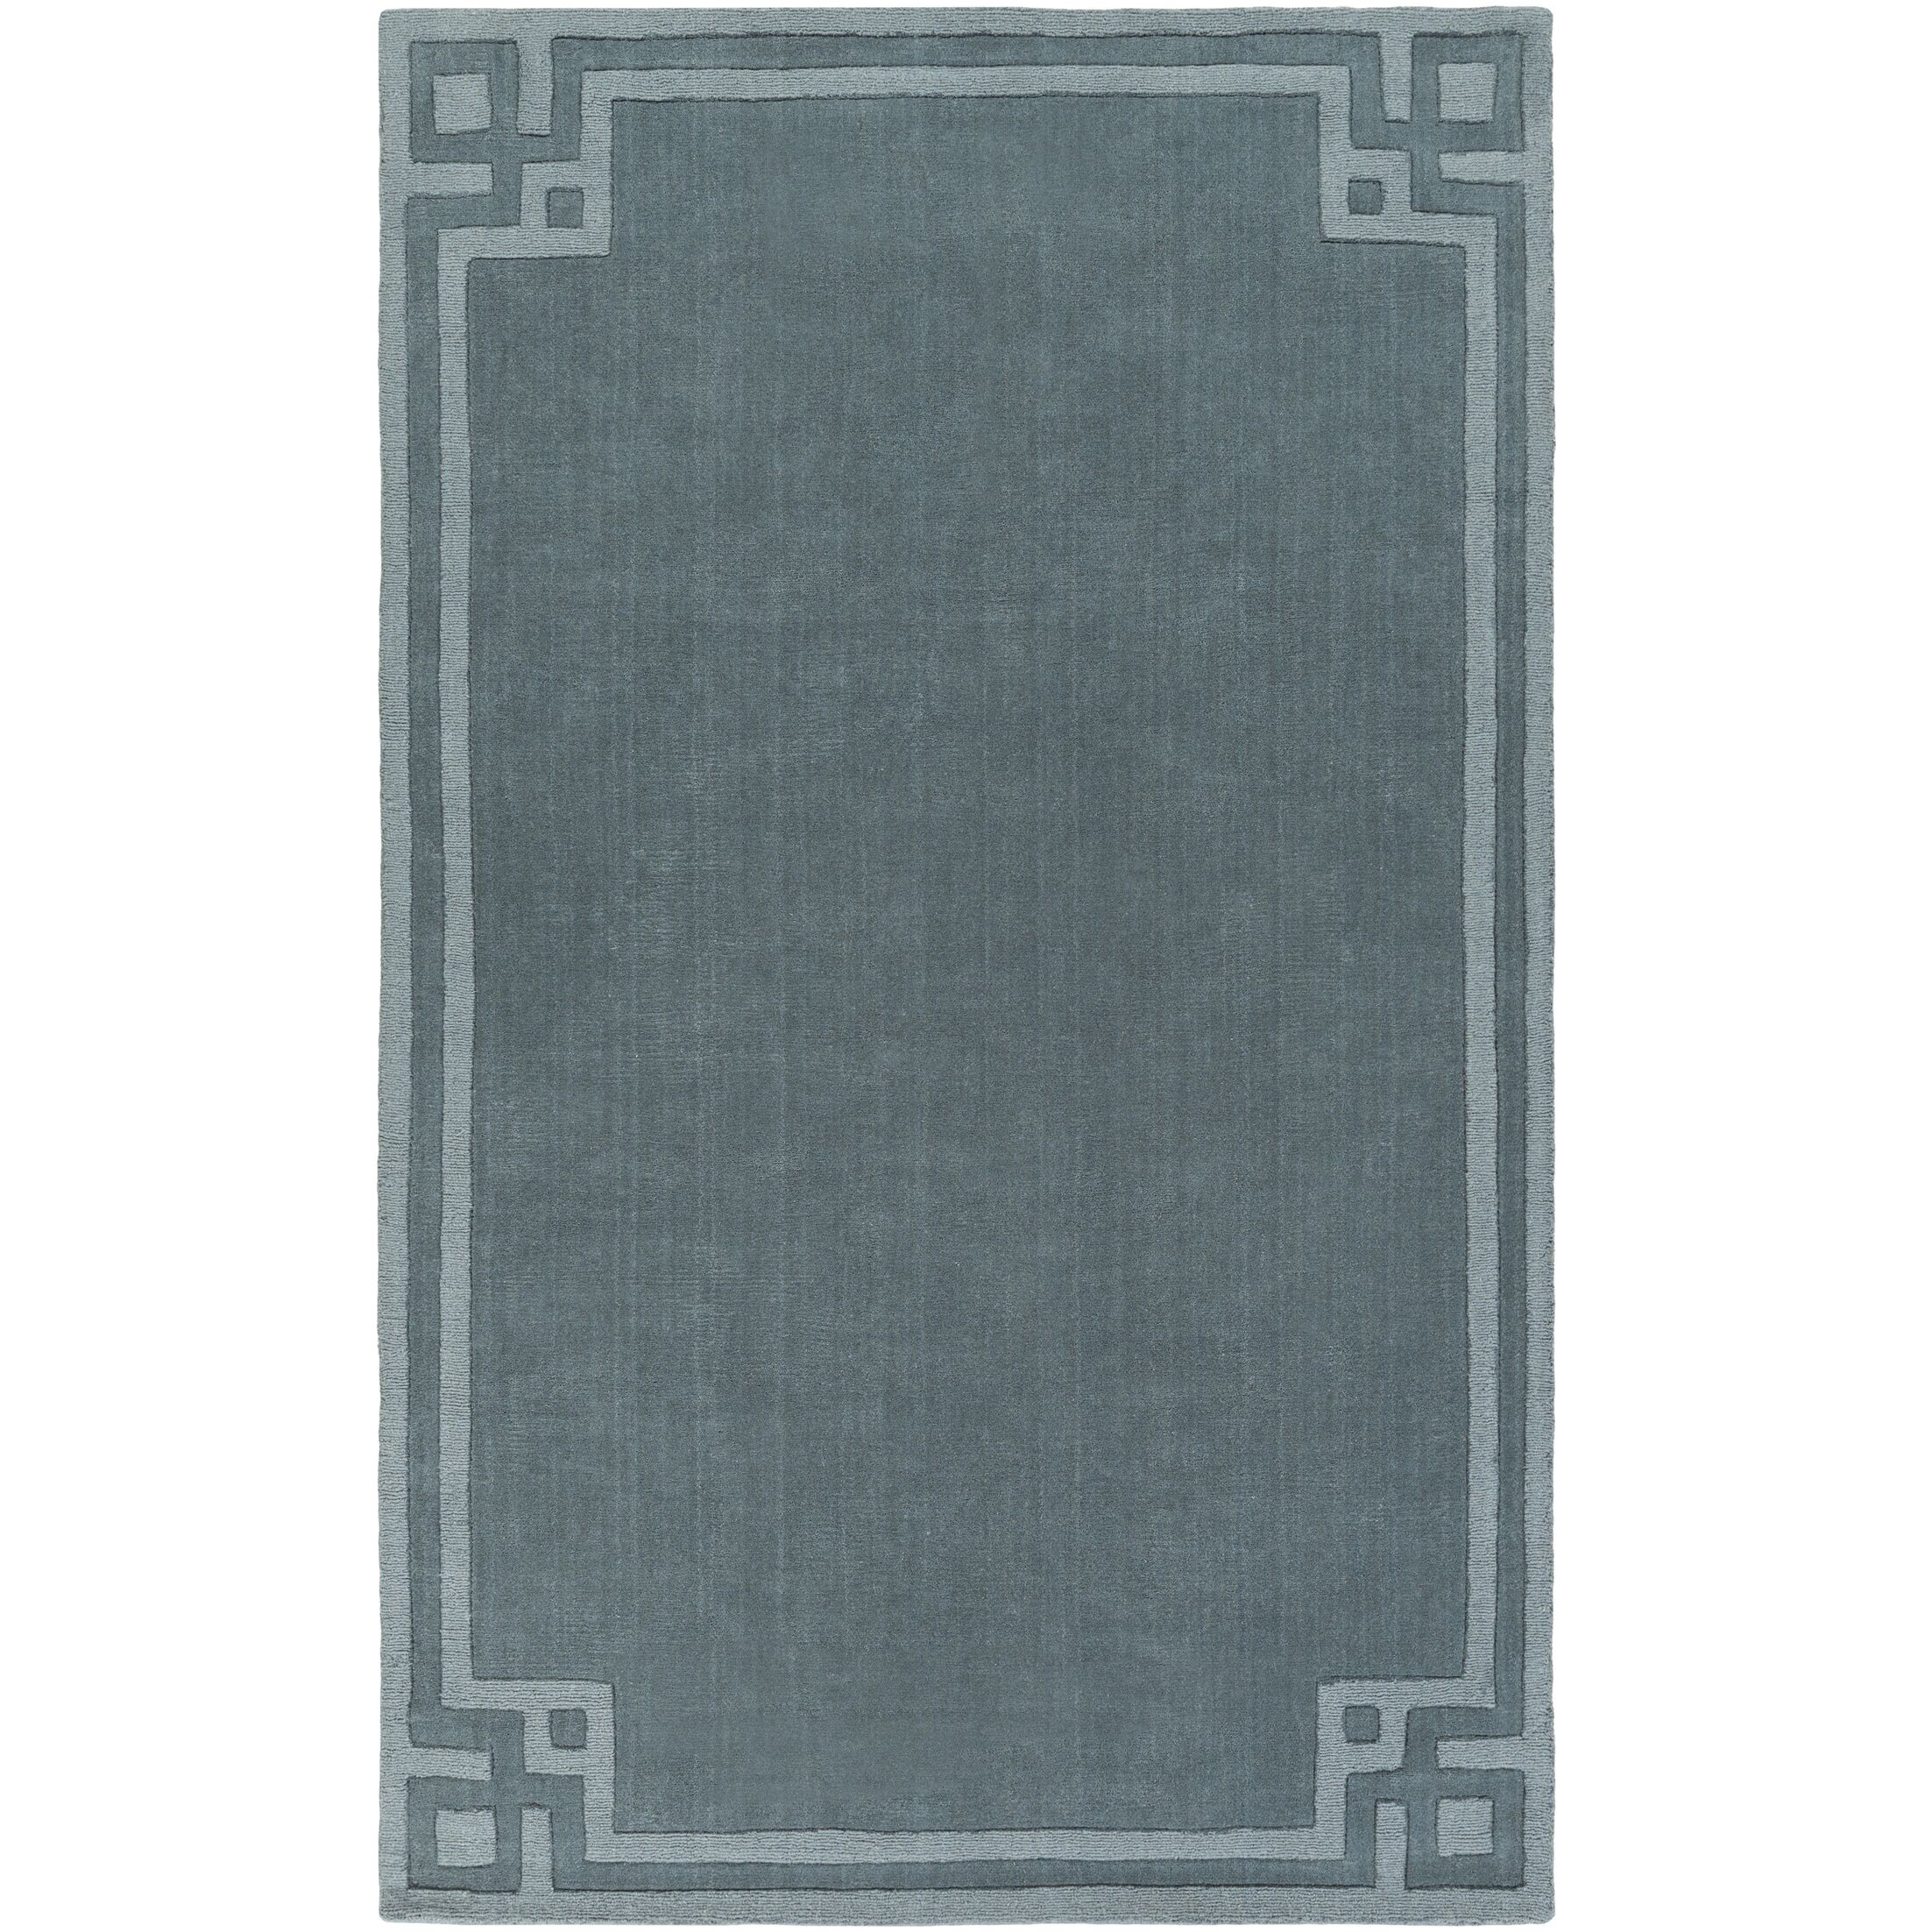 Peever Hand-Loomed Teal Area Rug Rug Size: Rectangle 9' x 13'